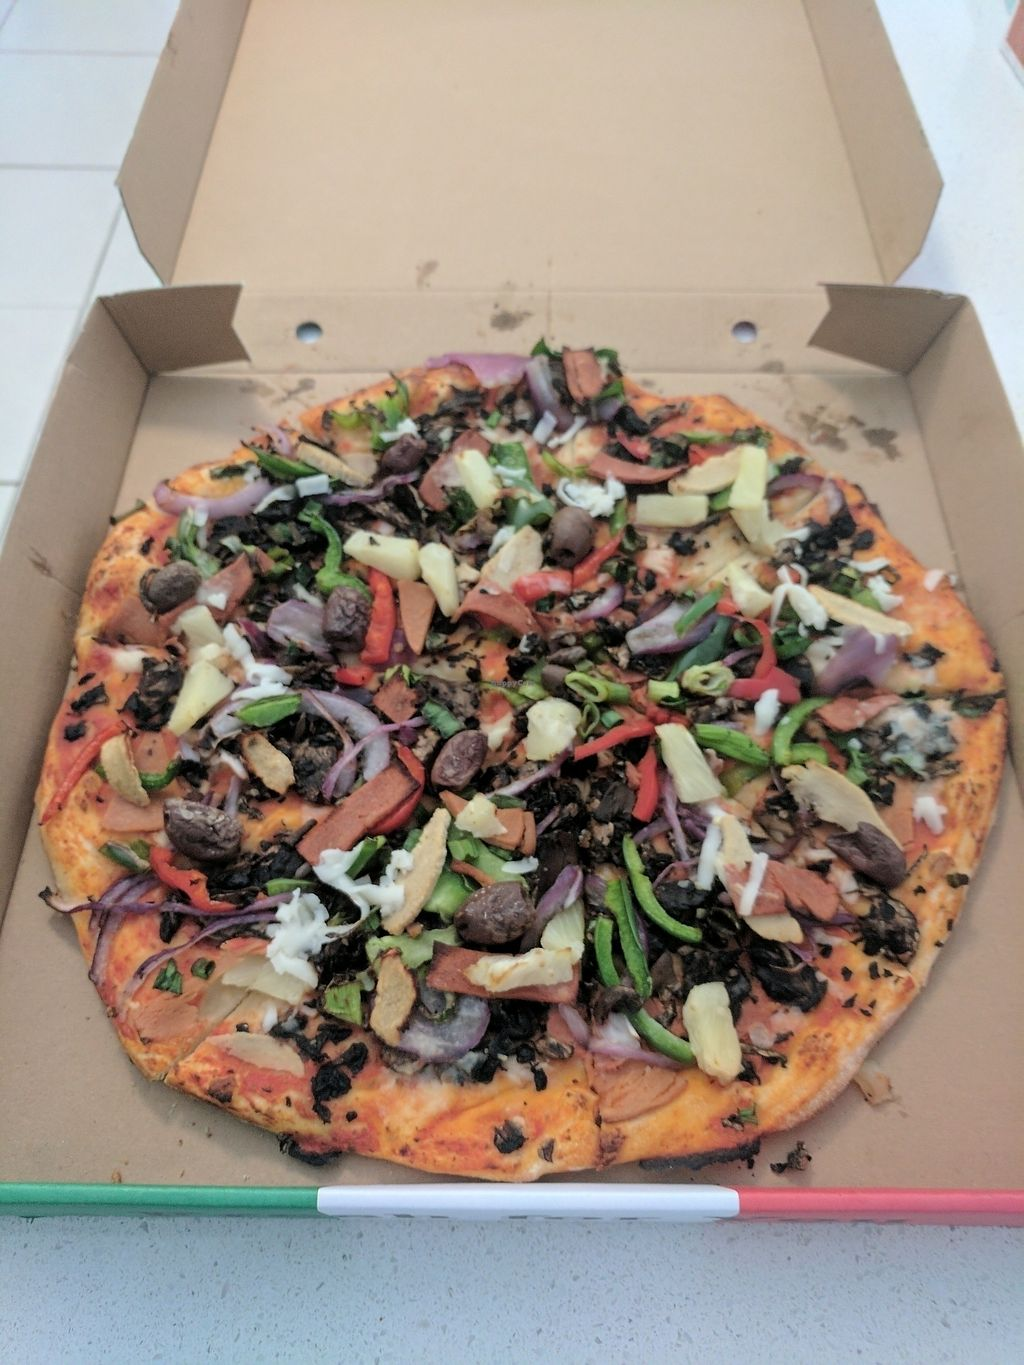 """Photo of Frank's Pizza Coffee & More  by <a href=""""/members/profile/tjn1992"""">tjn1992</a> <br/>Vegan Supreme <br/> July 7, 2017  - <a href='/contact/abuse/image/88993/277360'>Report</a>"""